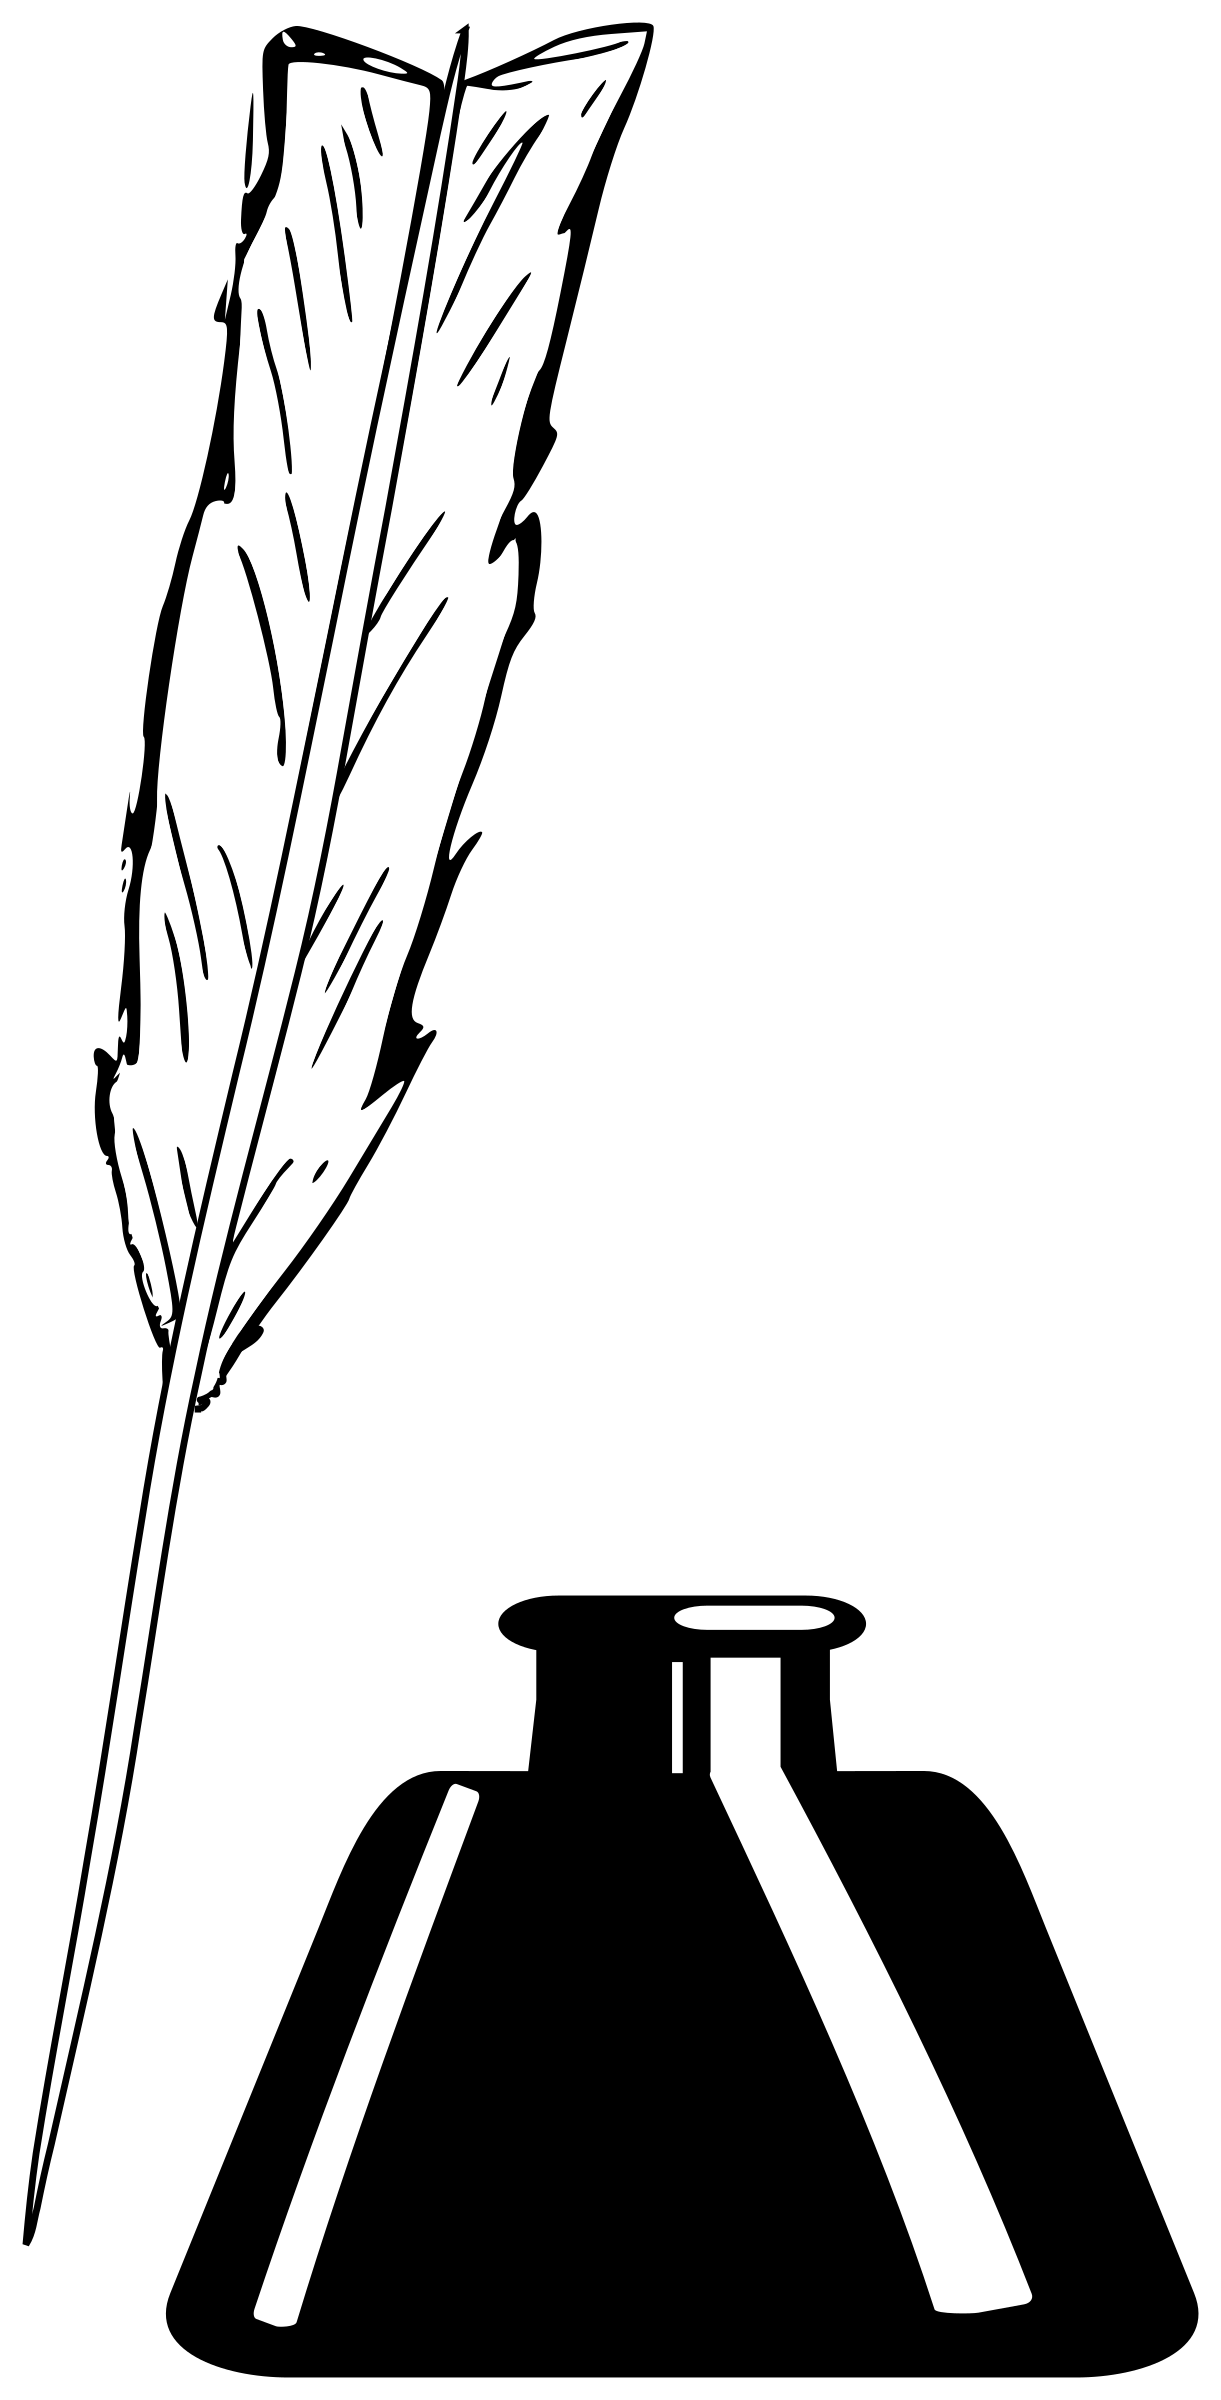 Clipart - Quill and Inkwell image black and white